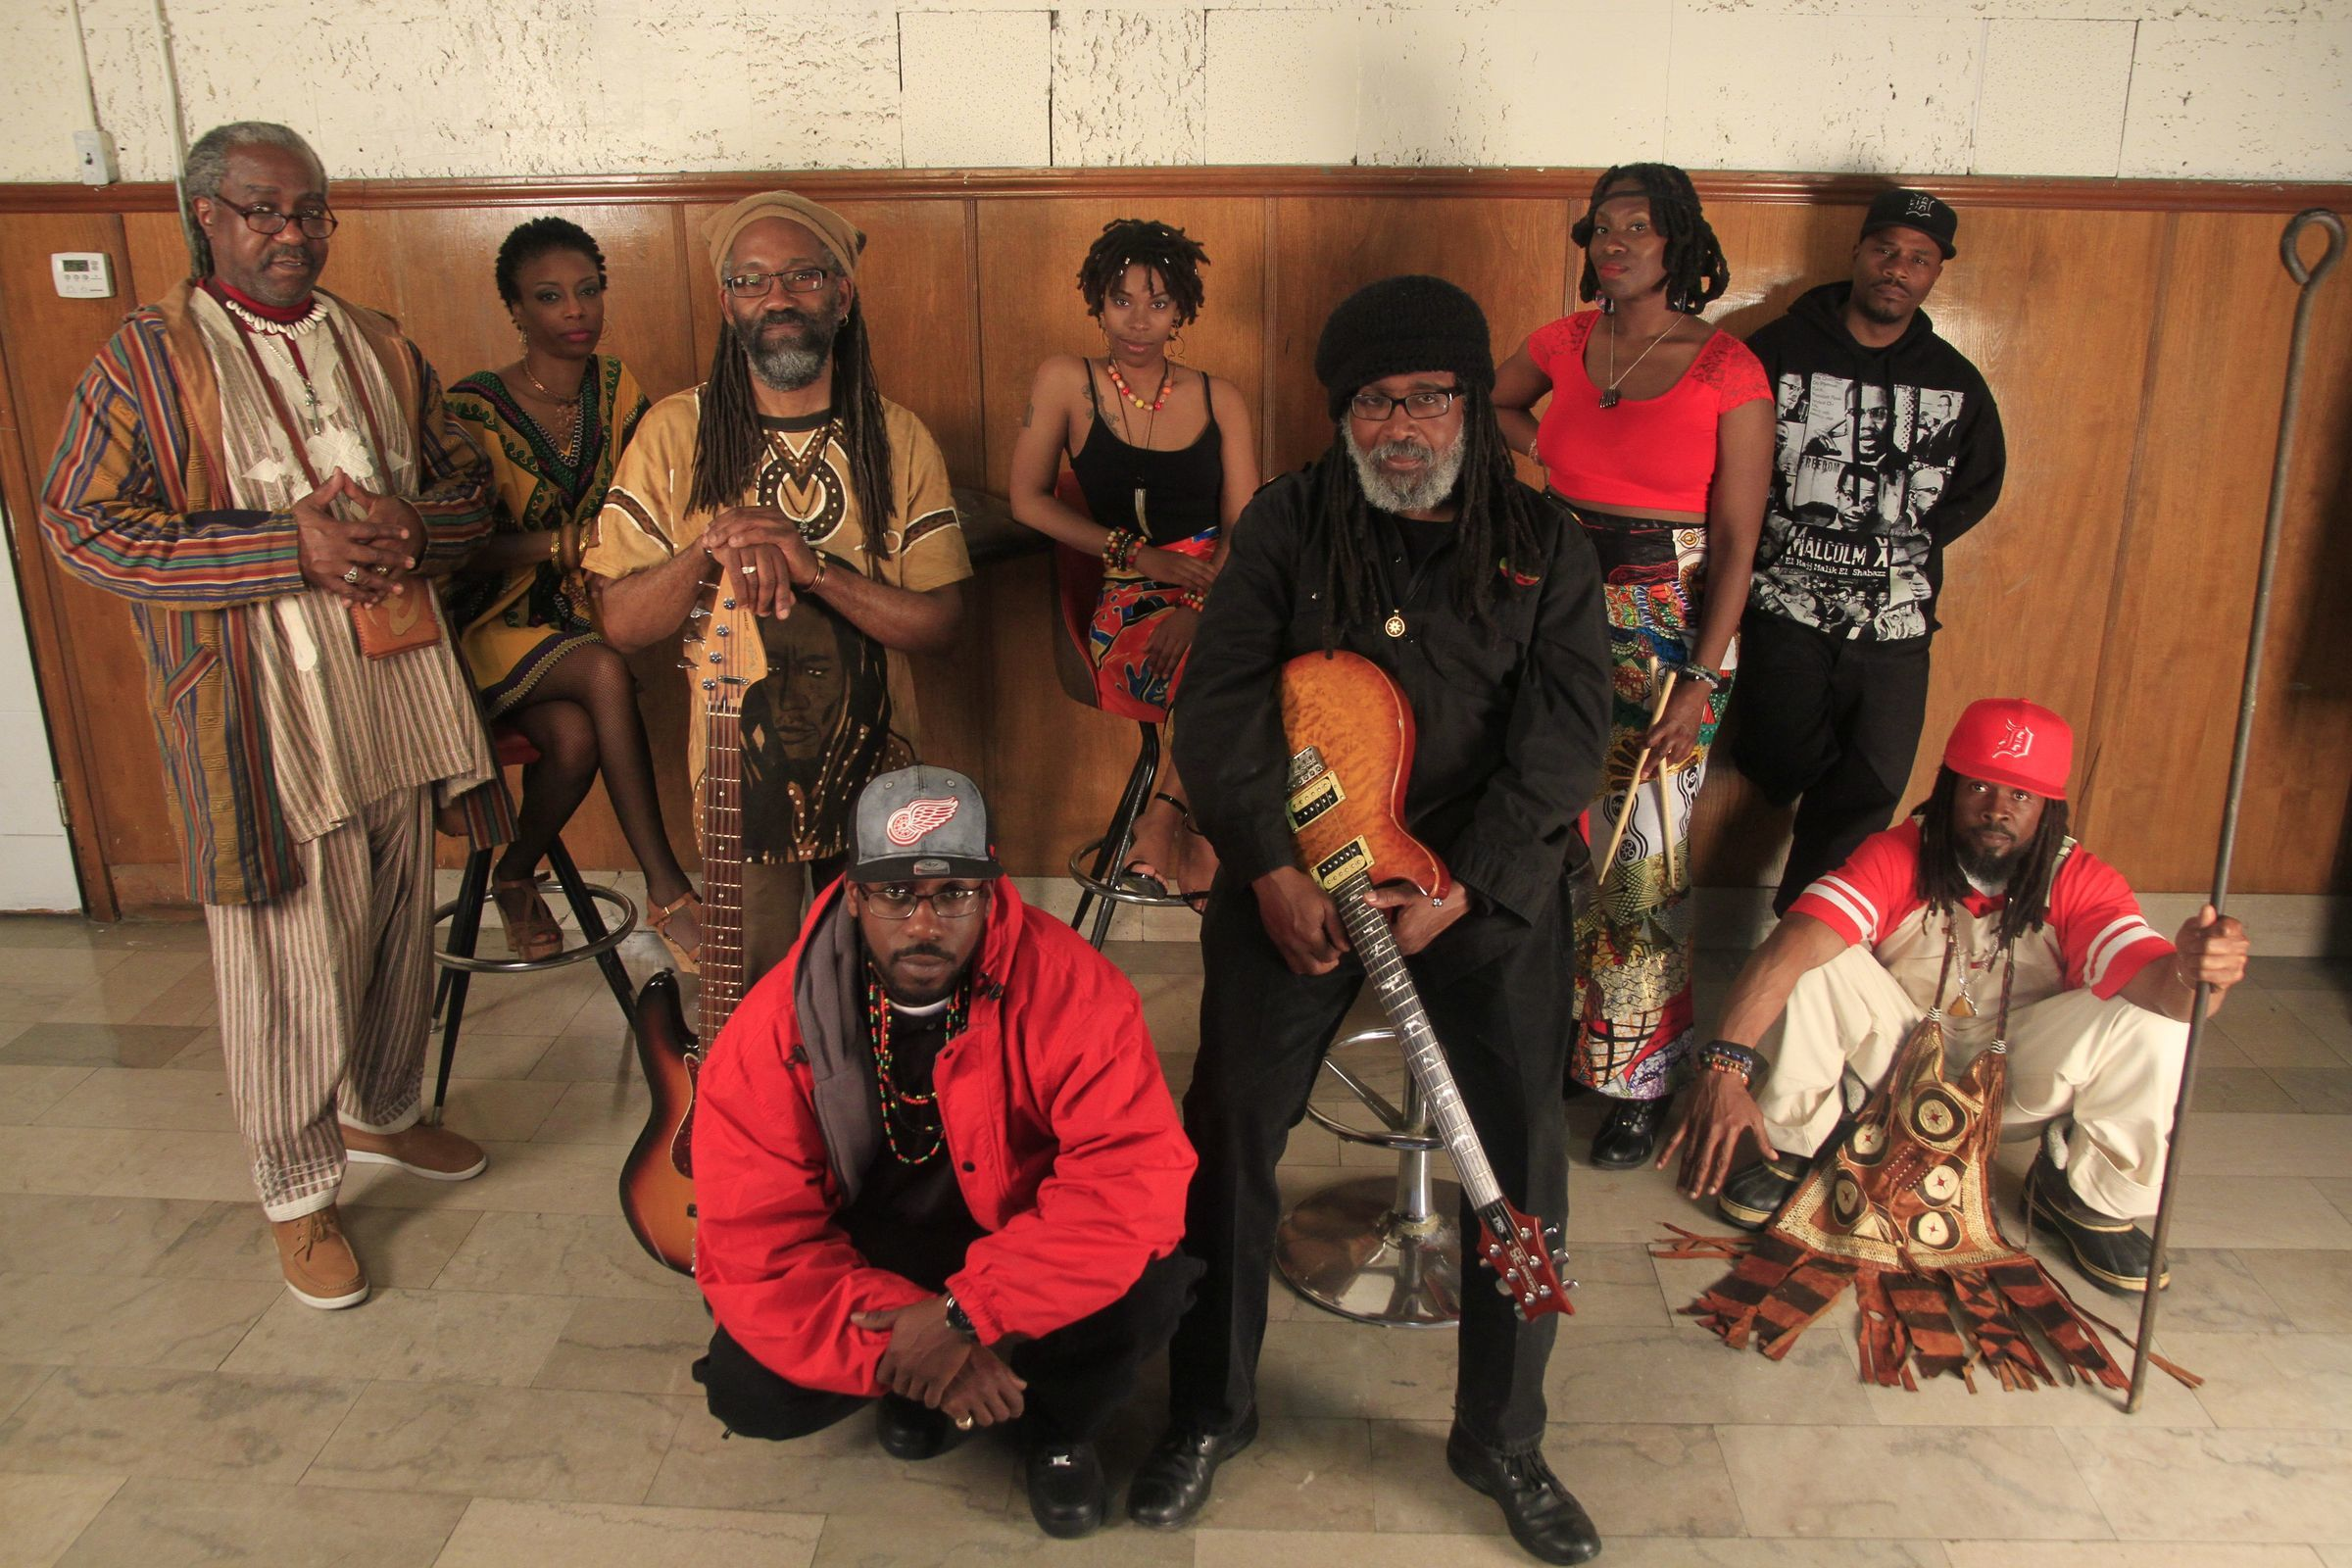 Mollywop!, which mixes reggae, rock and classic funk, performs Saturday at Detroit Rep's Summer Arts & Culture Festival.